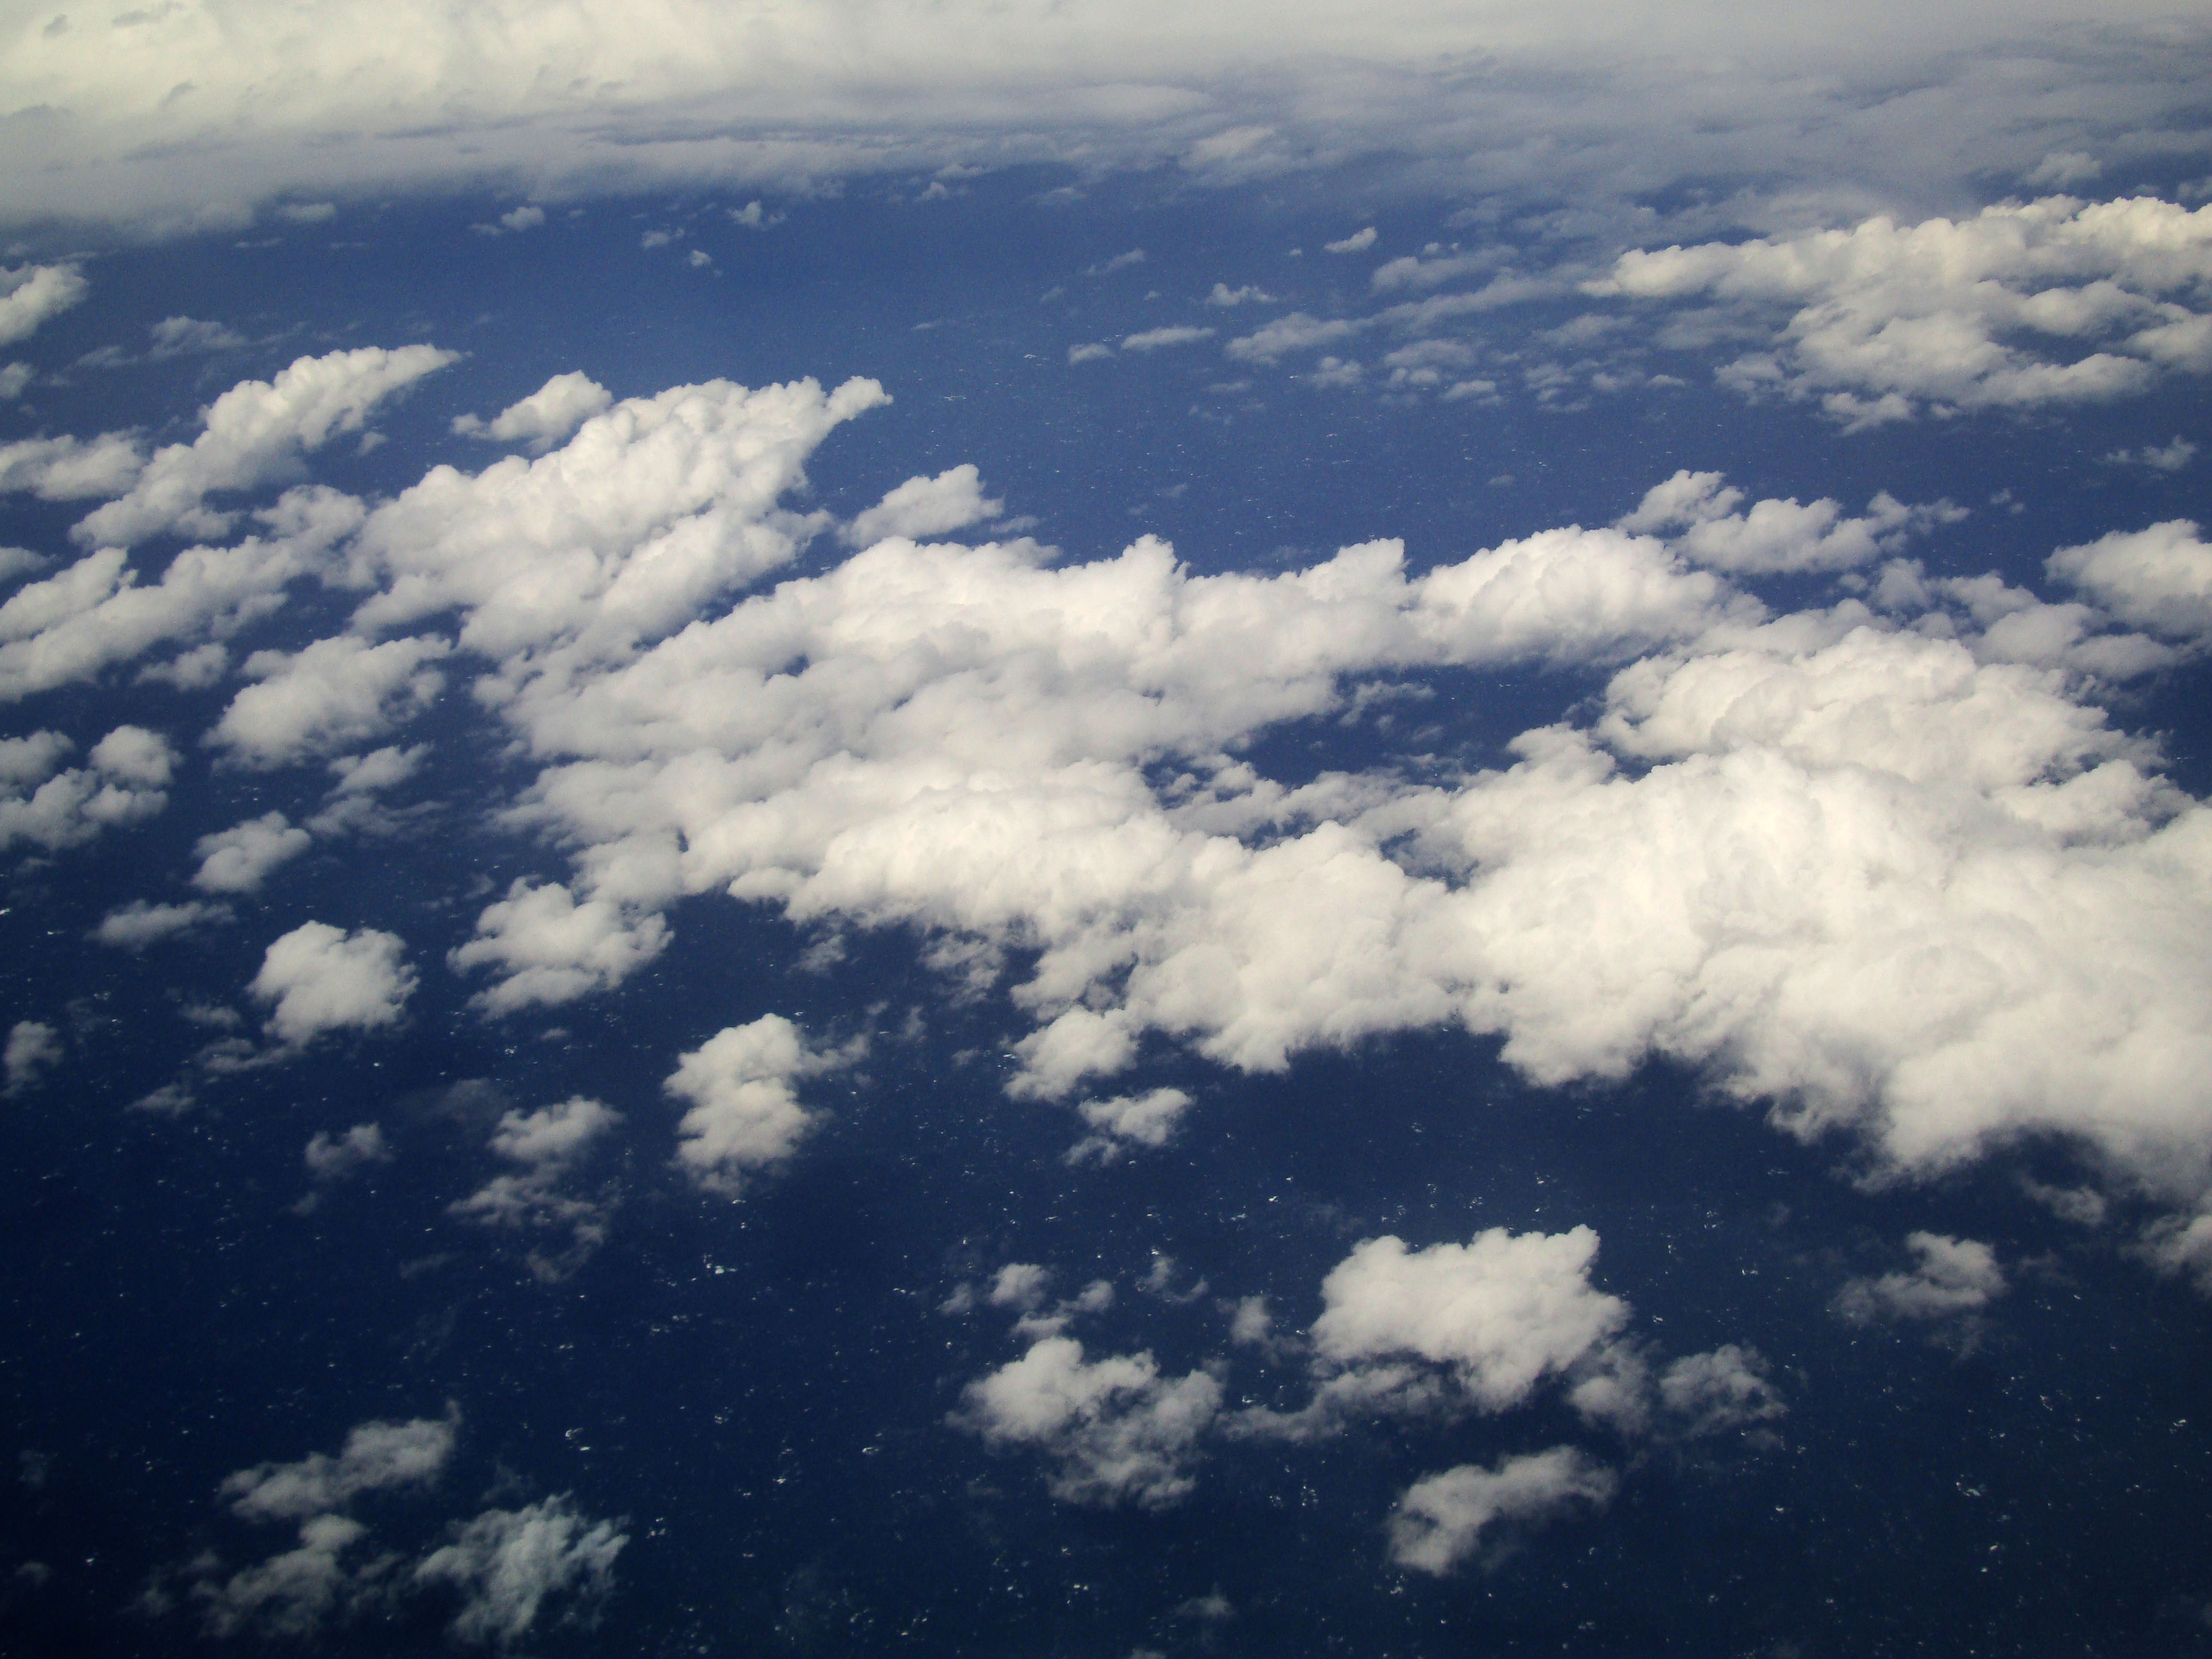 Textures Clouds Formations Sky Storms Weather Phenomena Aerial Views 23